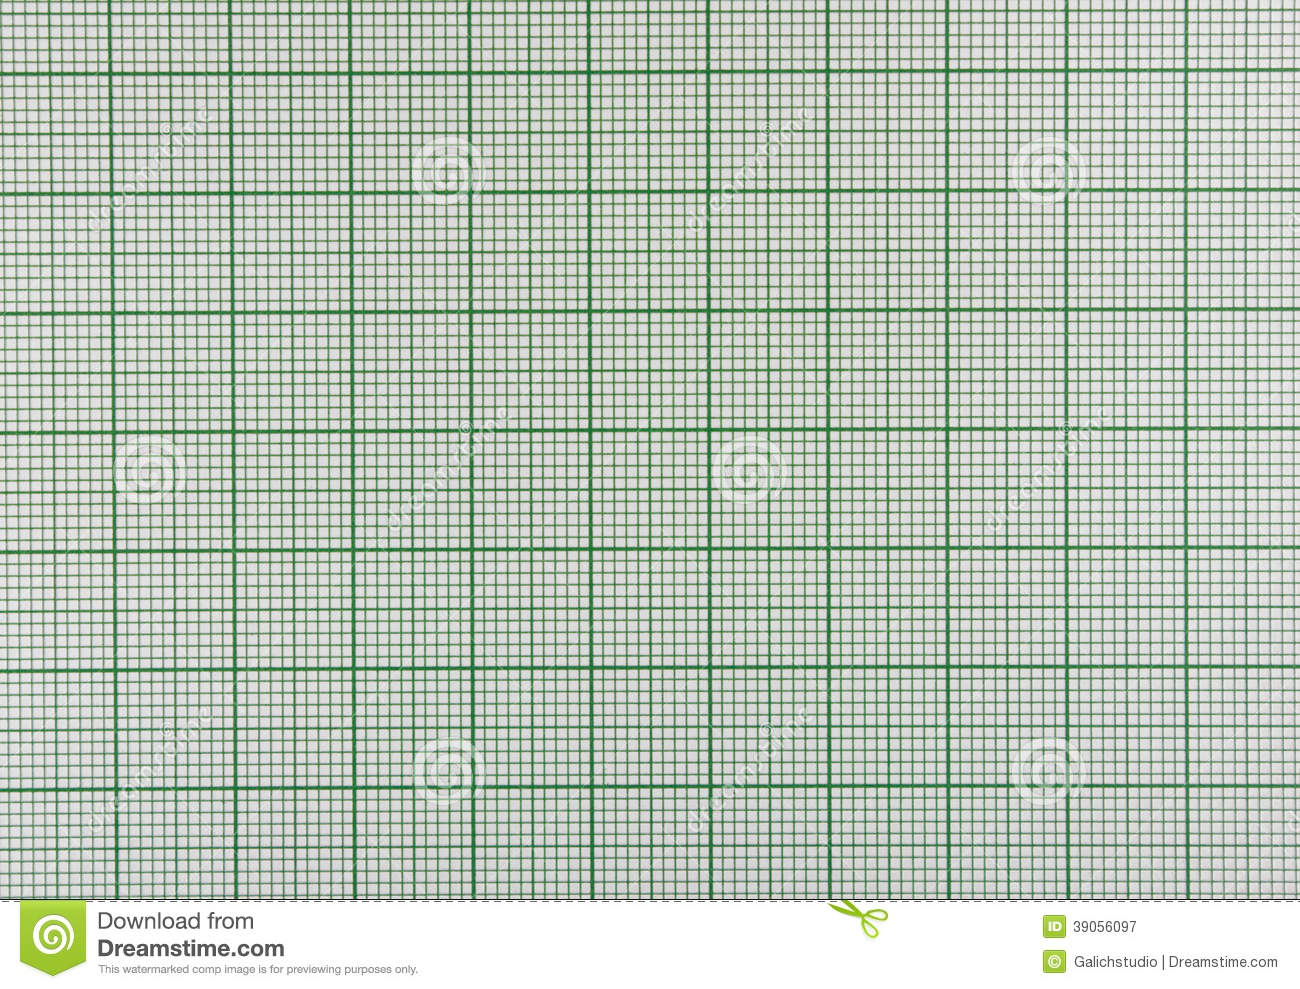 small grid graph paper